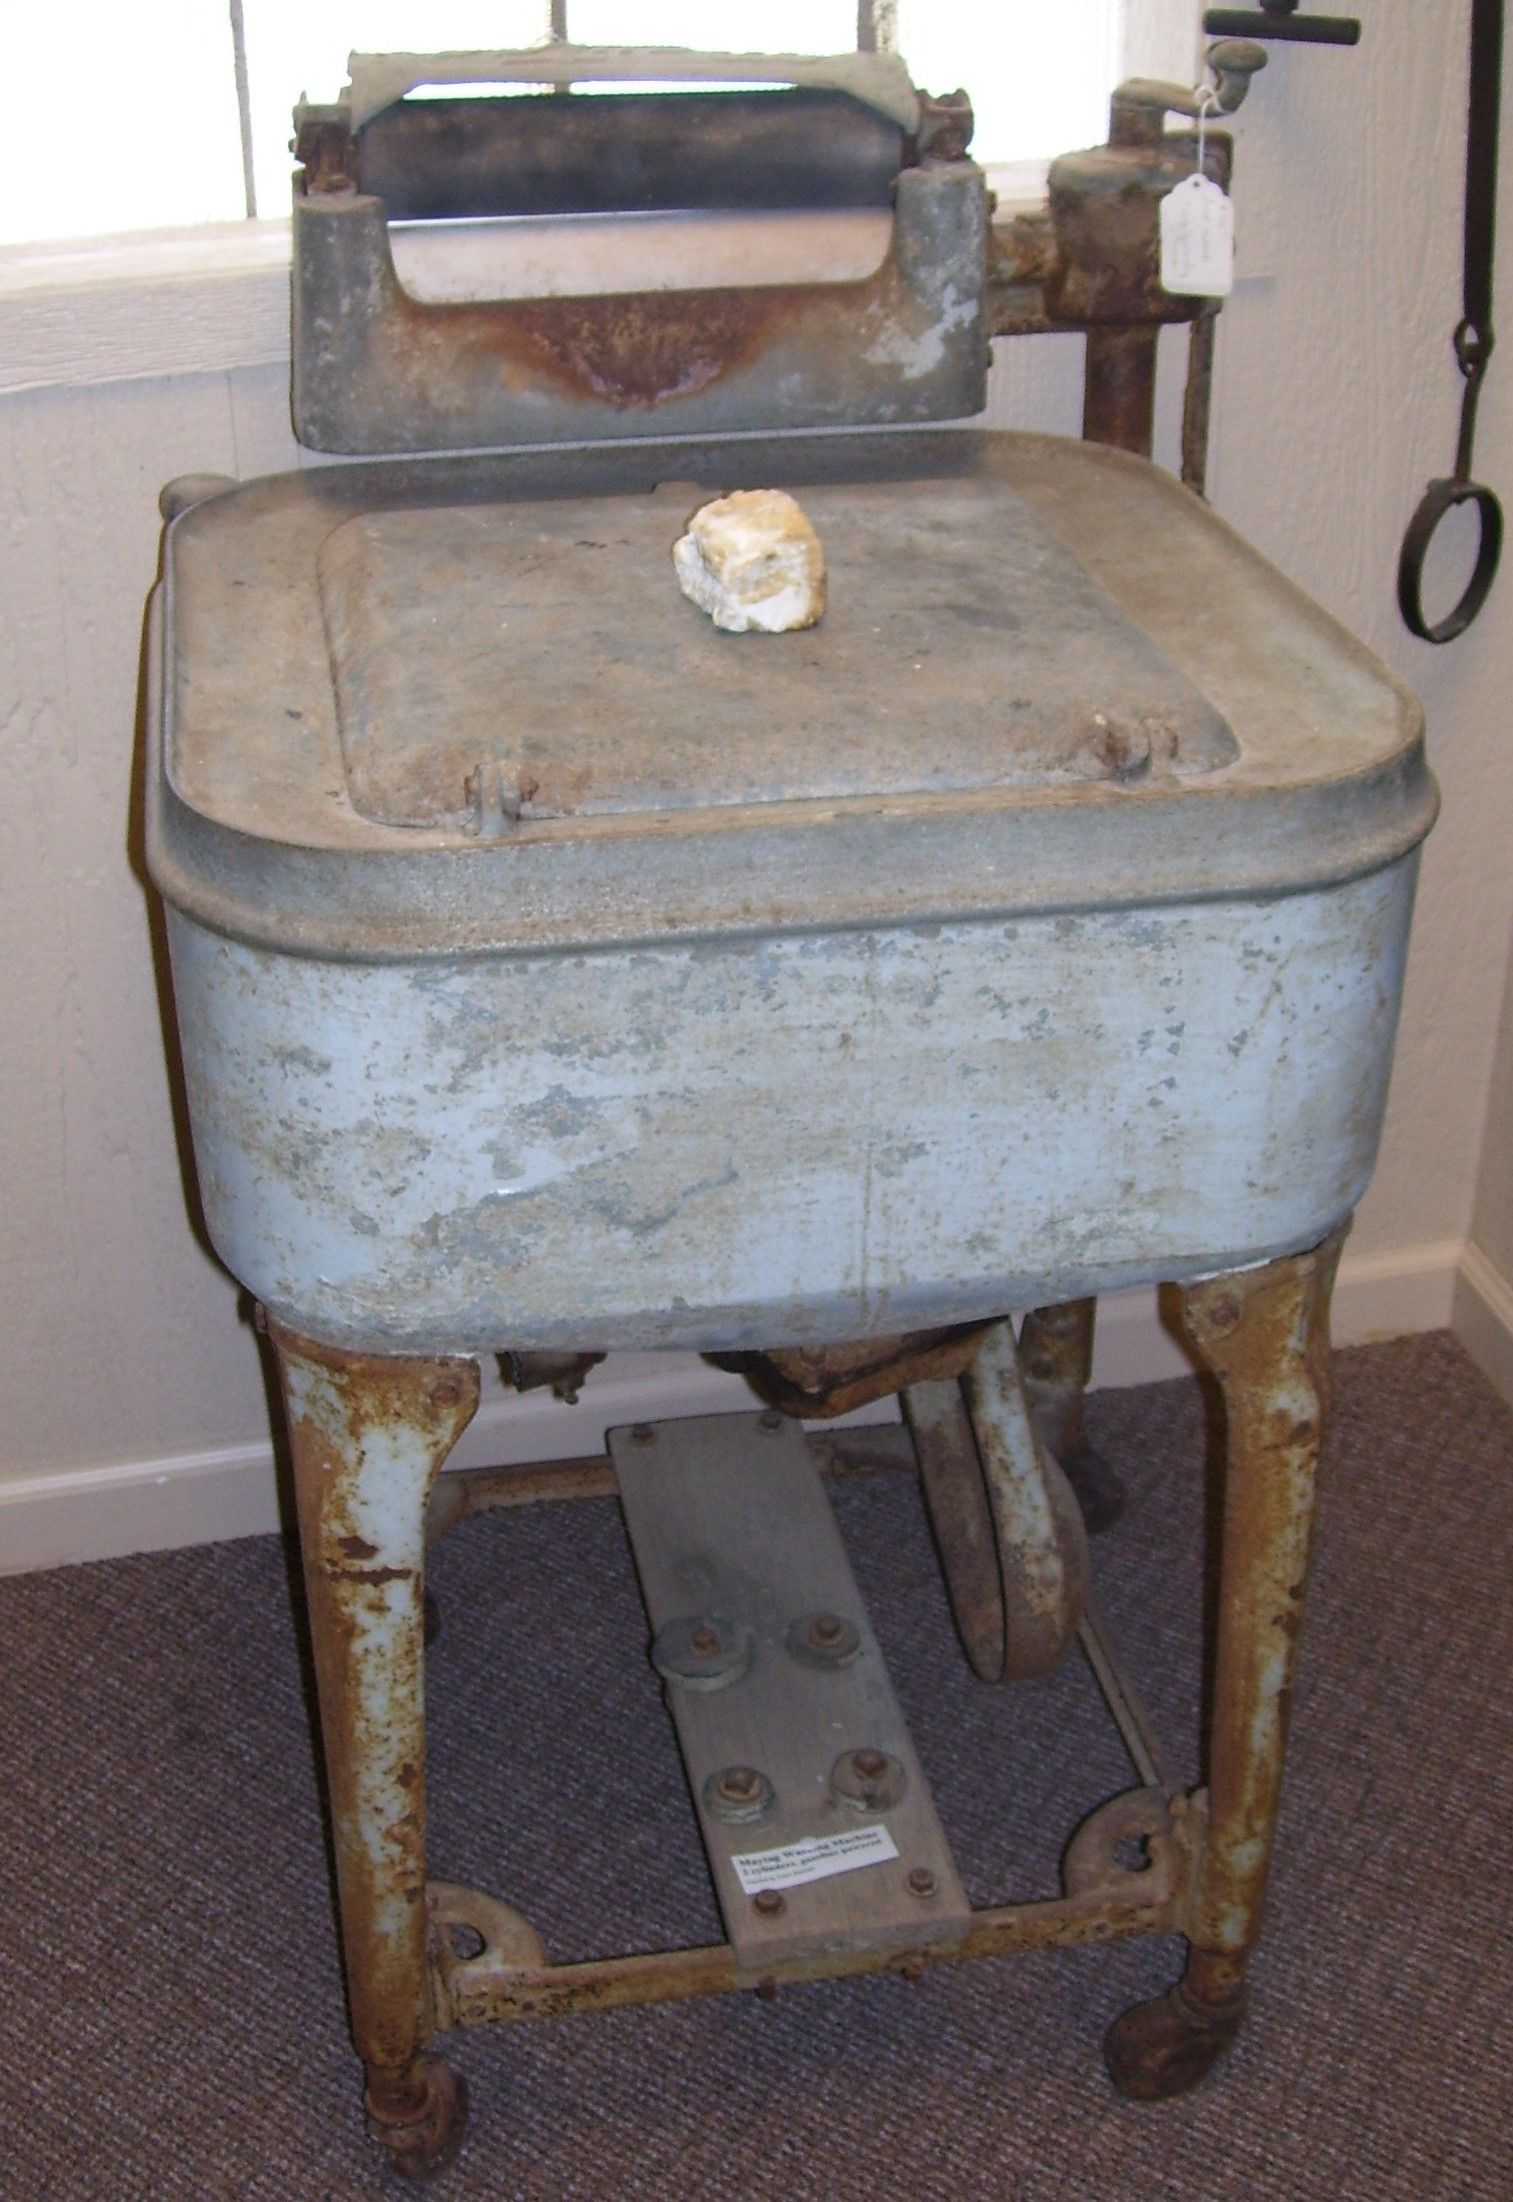 This is a 1930 Maytag wringer washer. When new, it cost $33.50 ...